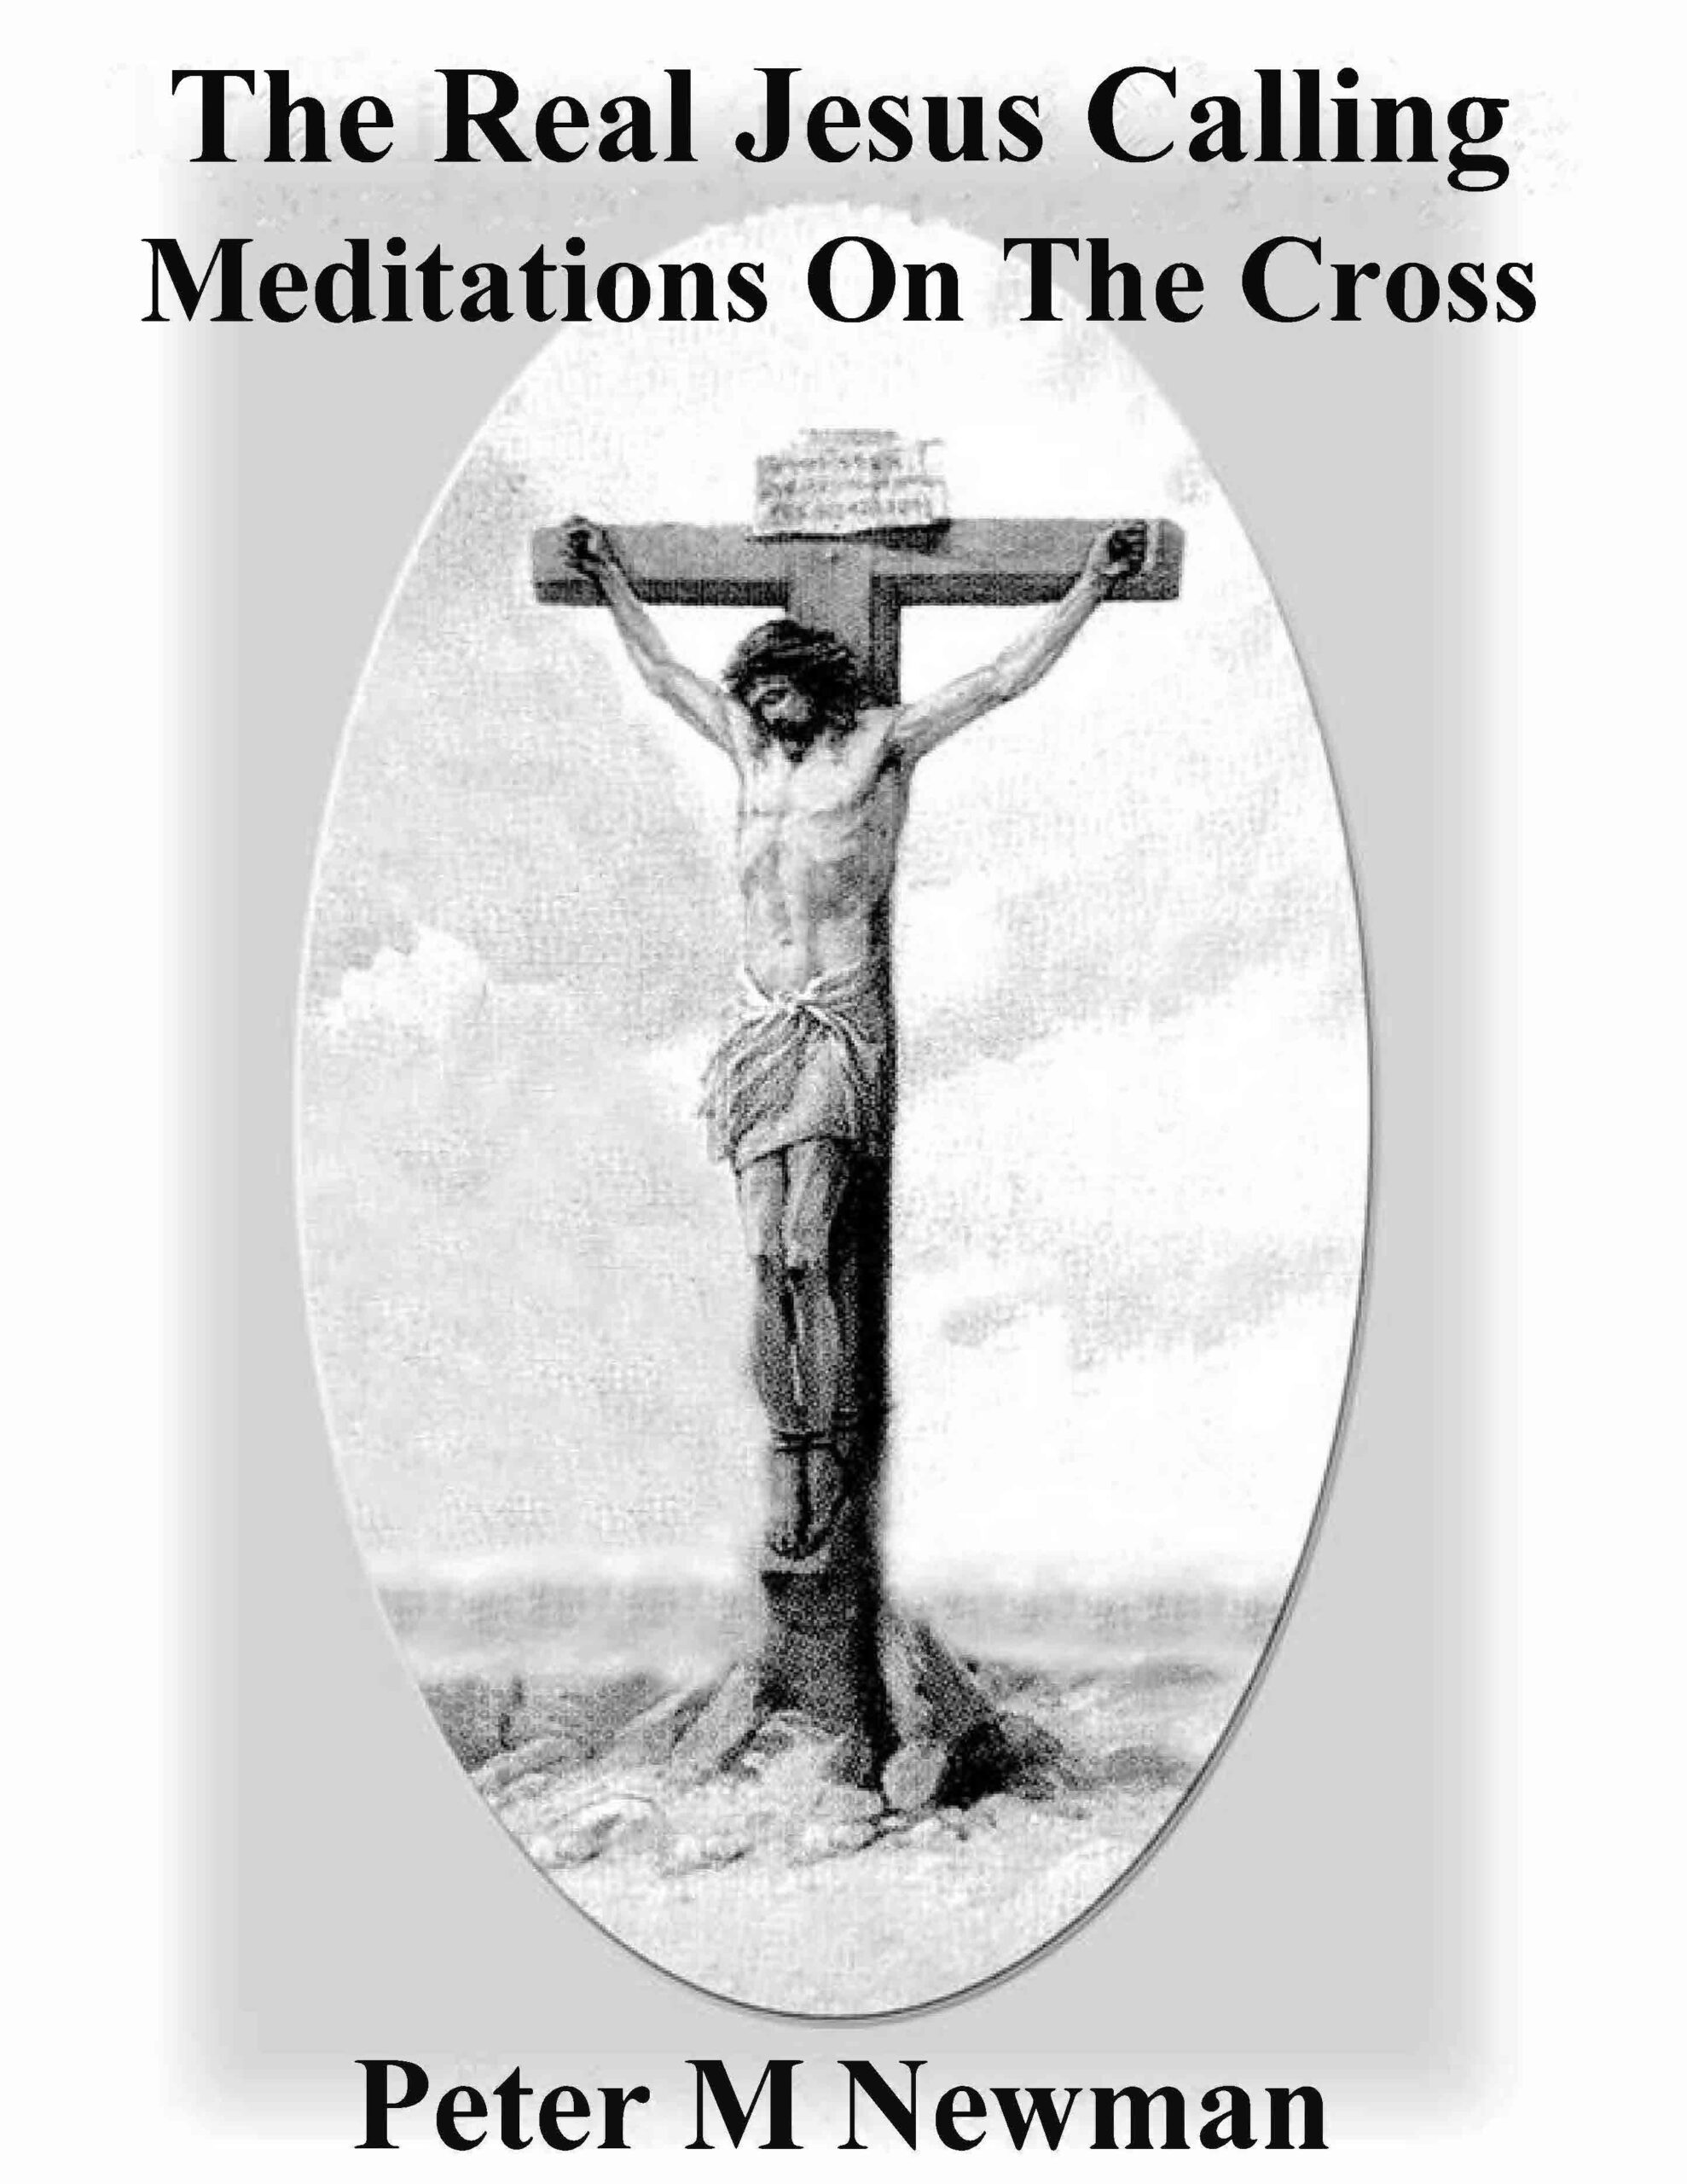 The Real Jesus Calling: Meditations on the Cross